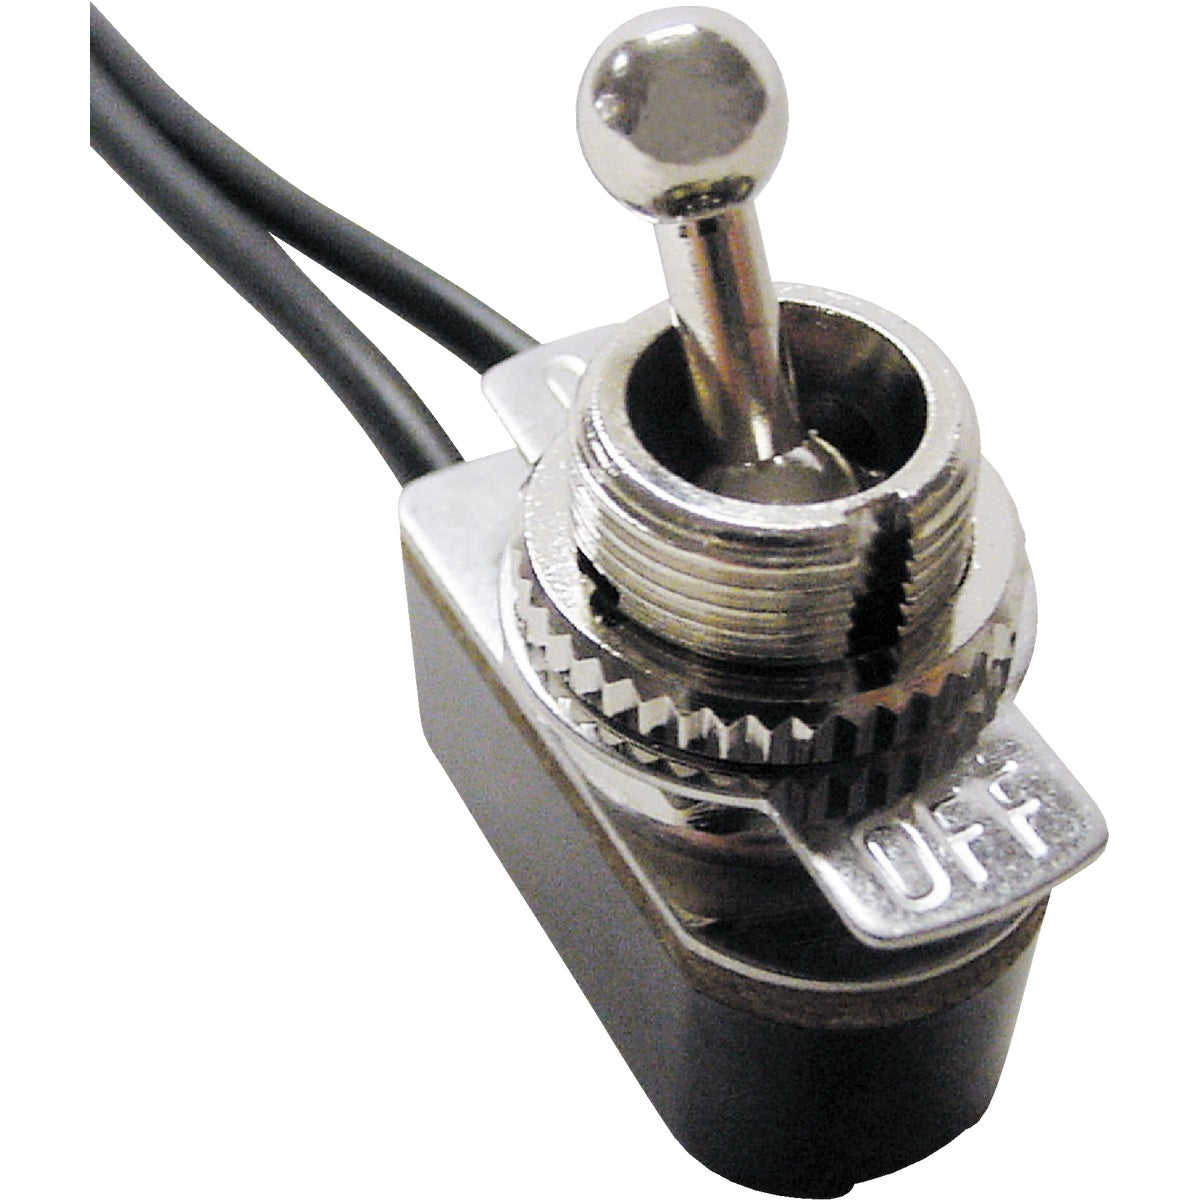 MED DUTY TOGGLE SWITCH - GSW-125 by G B Electrical Inc